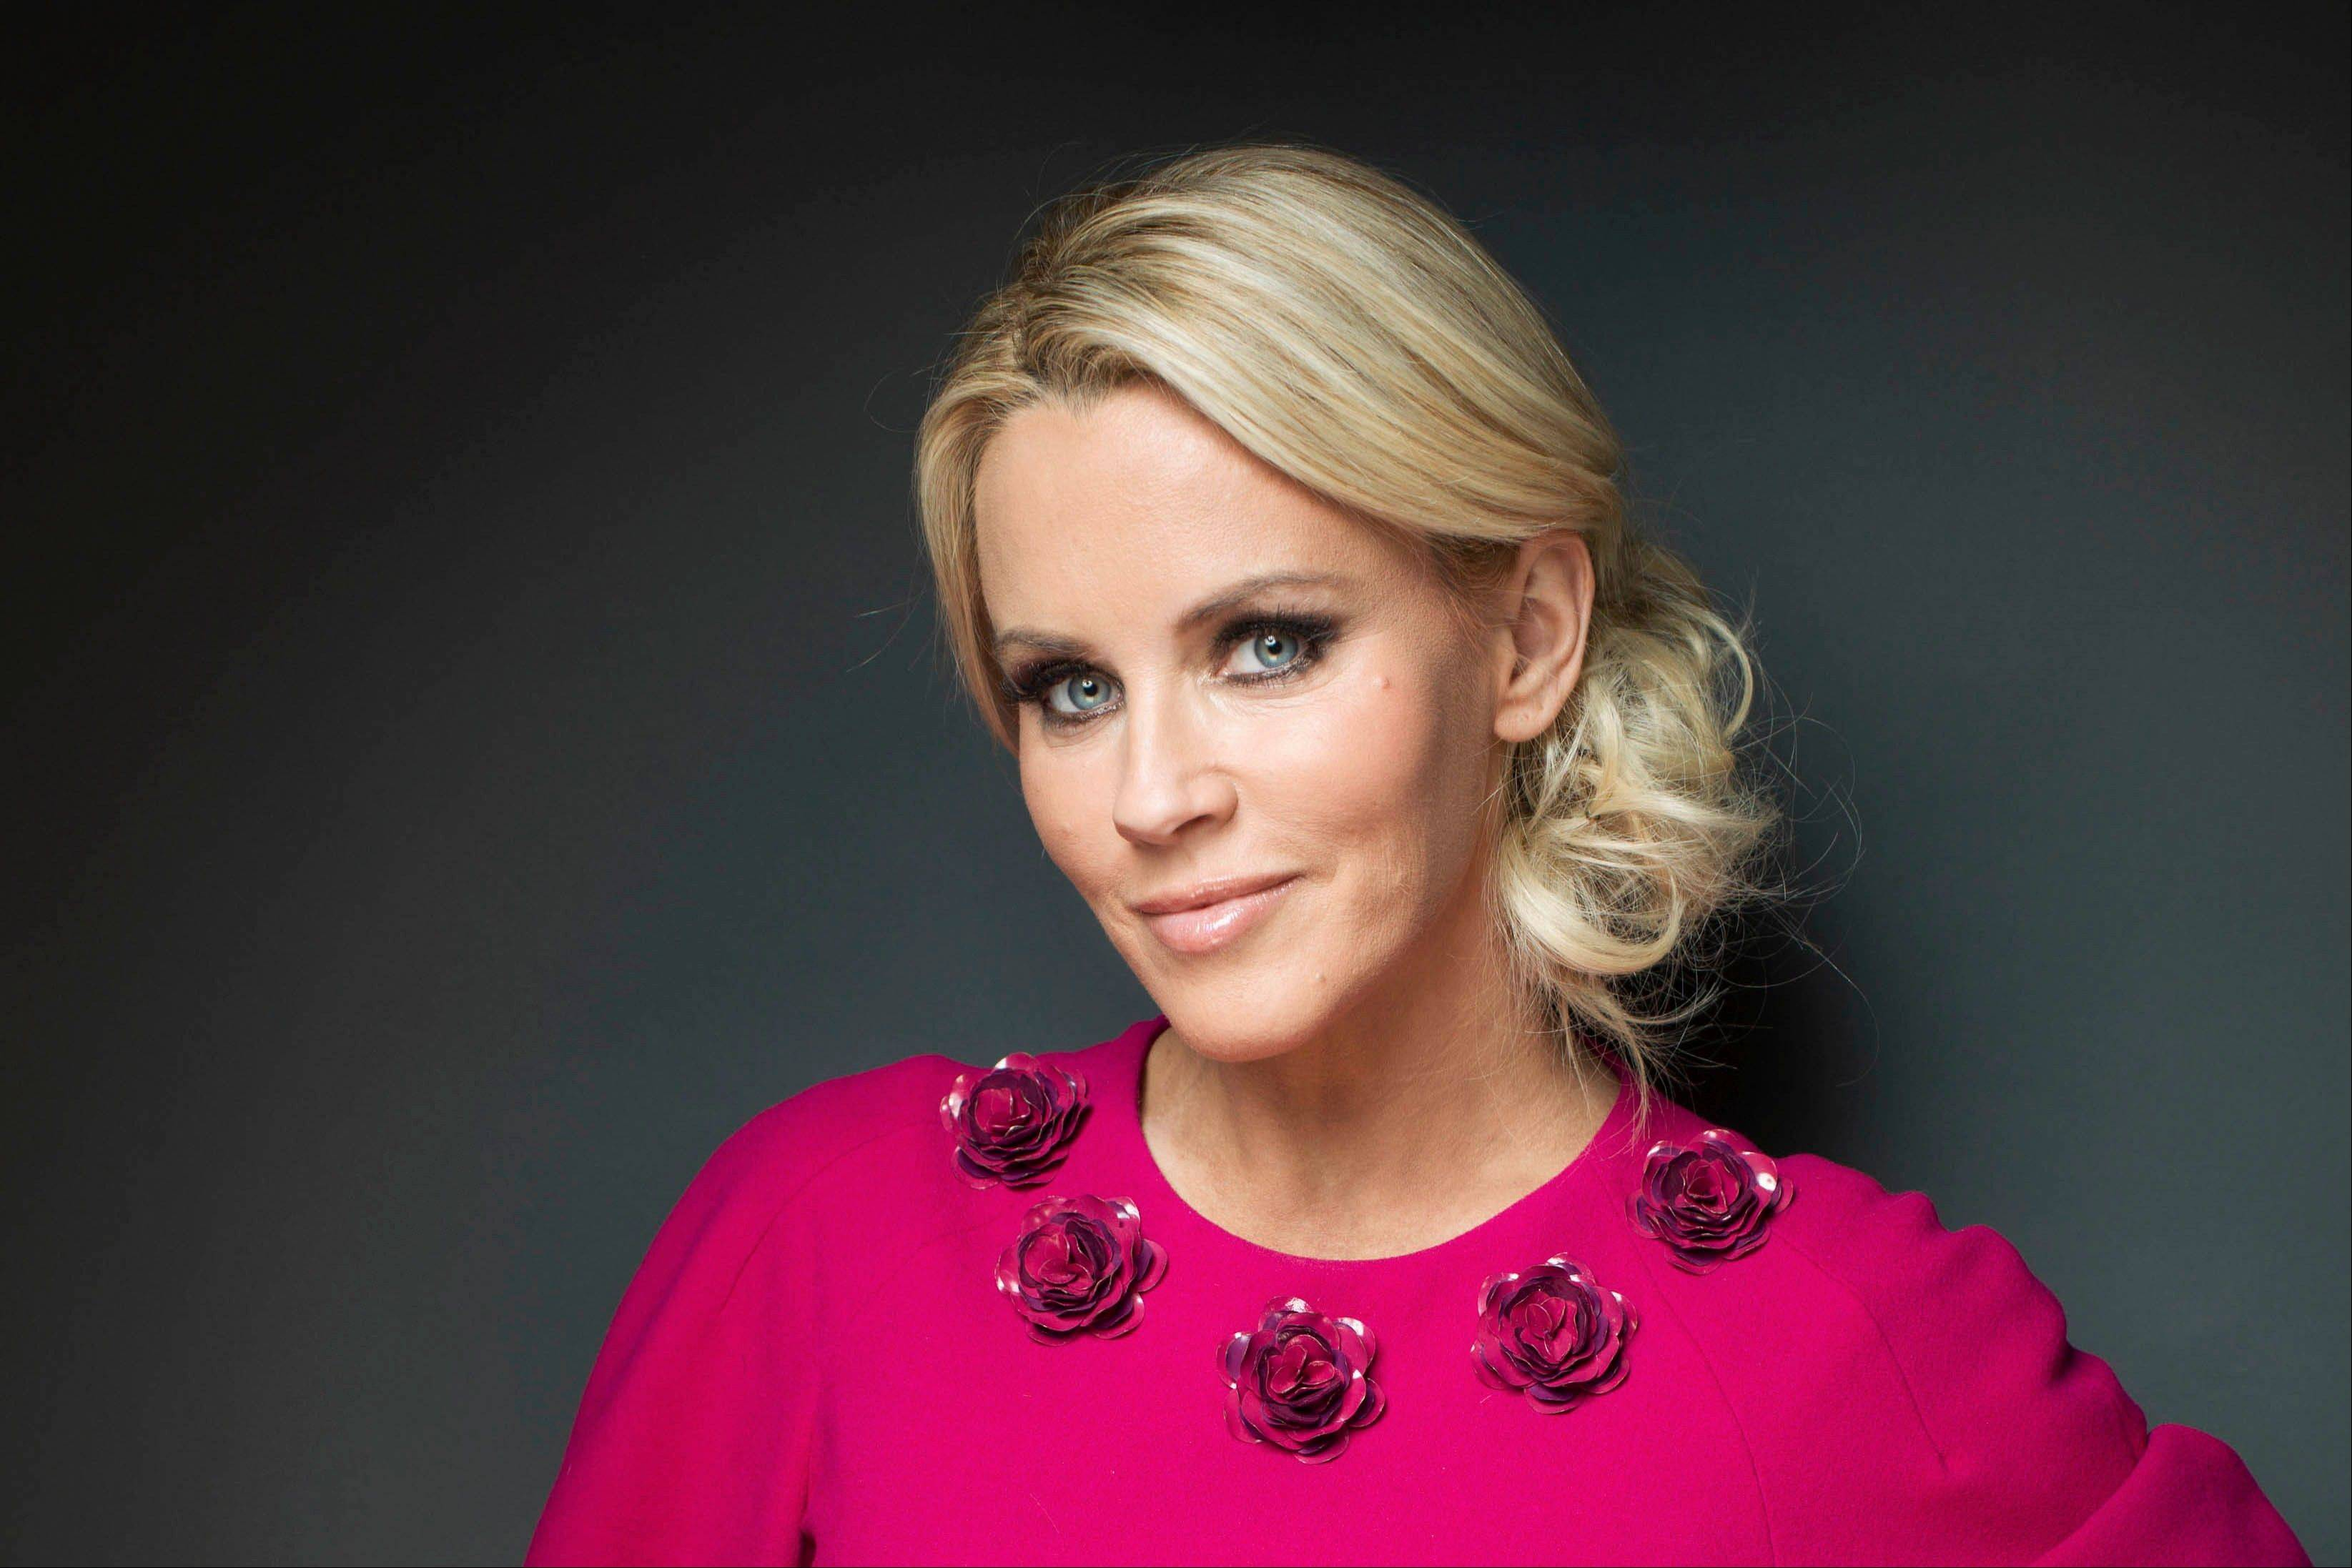 Comedian, actress, and author Jenny McCarthy was named Monday to join the panel of the ABC weekday talk show �The View.�